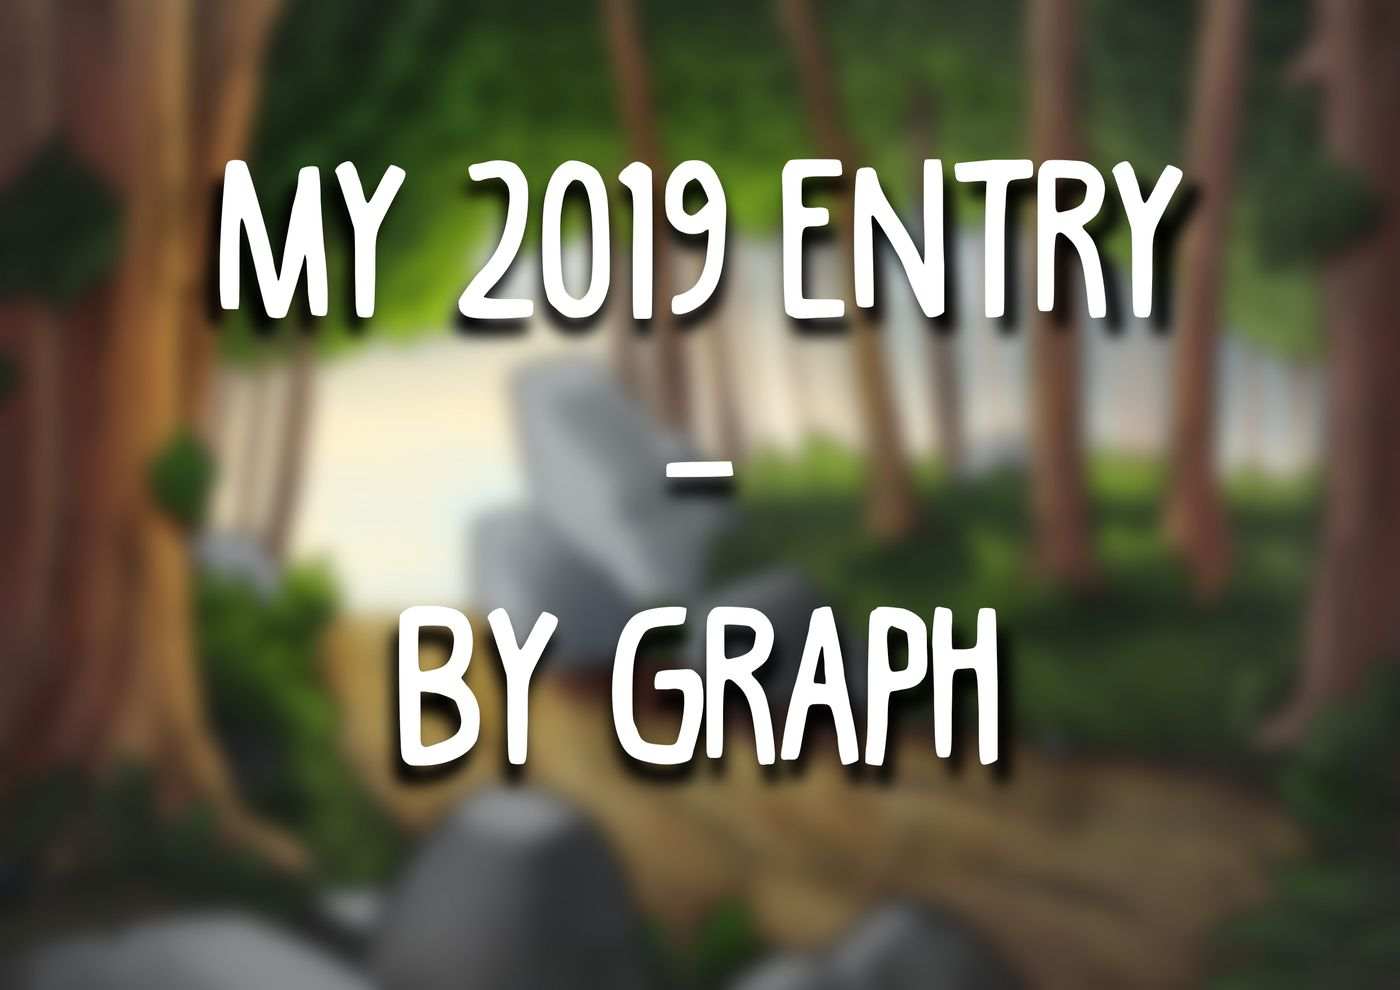 2019 Entry for Rookie's contest